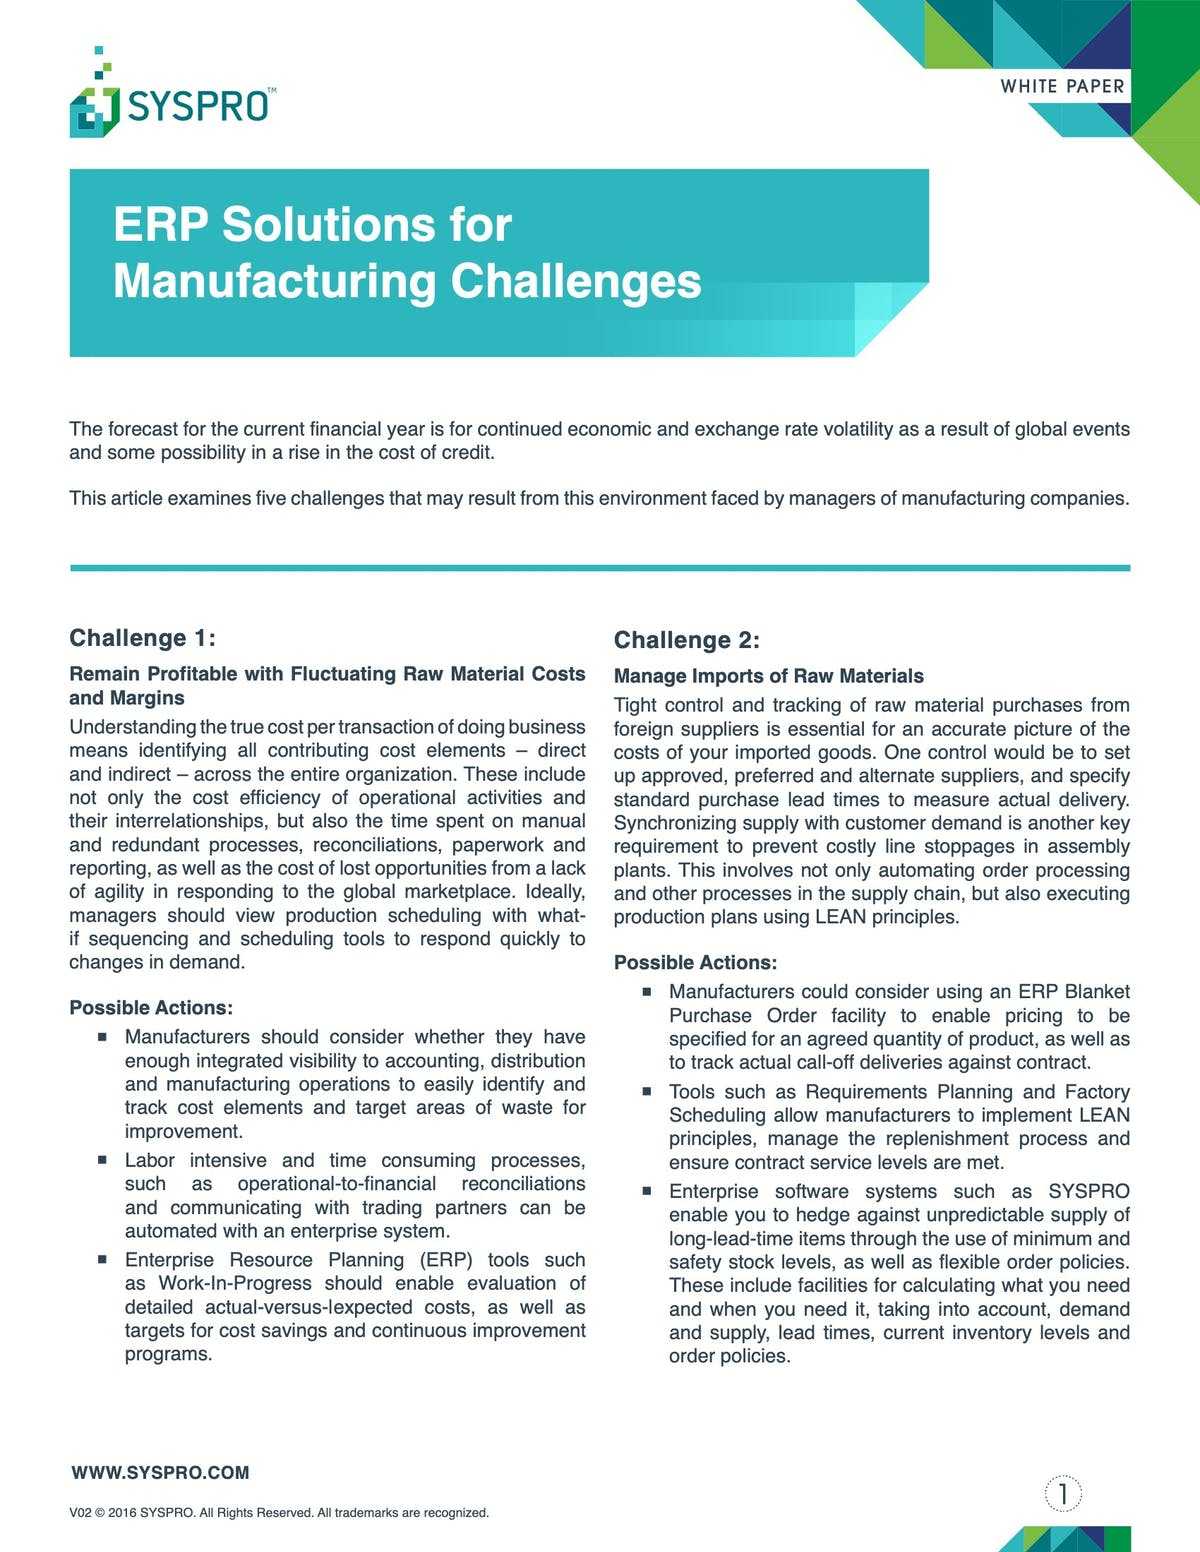 SYSPRO White Paper - ERP Solutions for Manufacturing Challenges